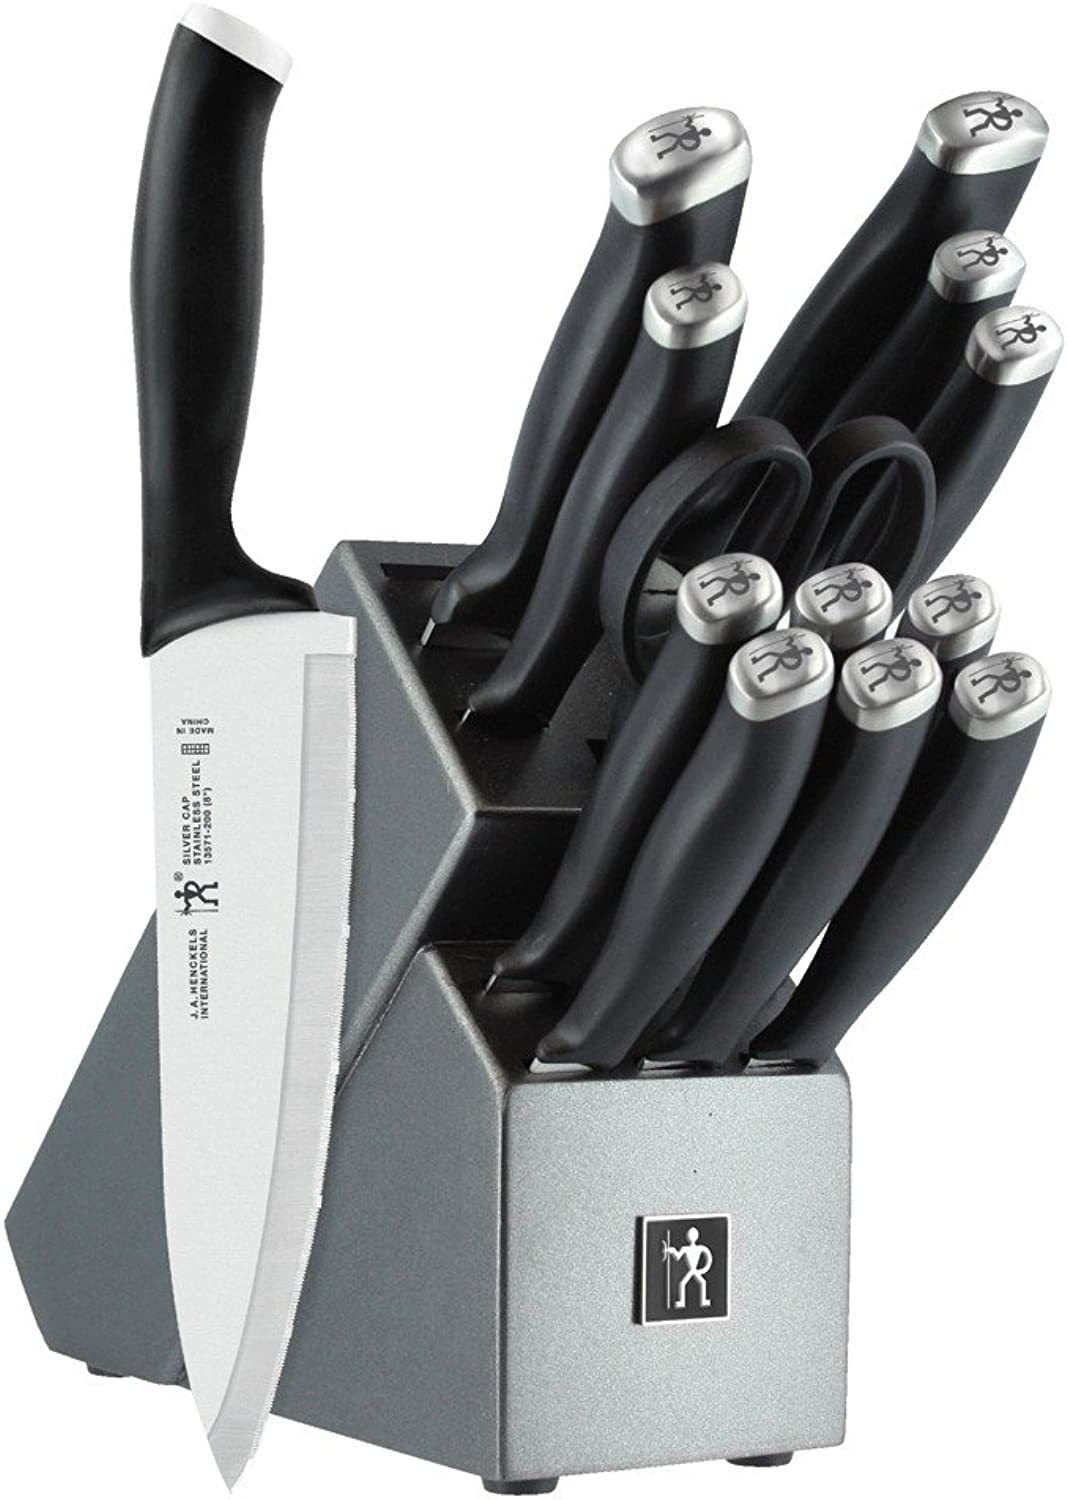 J.A. Henckels International SilverCap 14-Piece Block Set